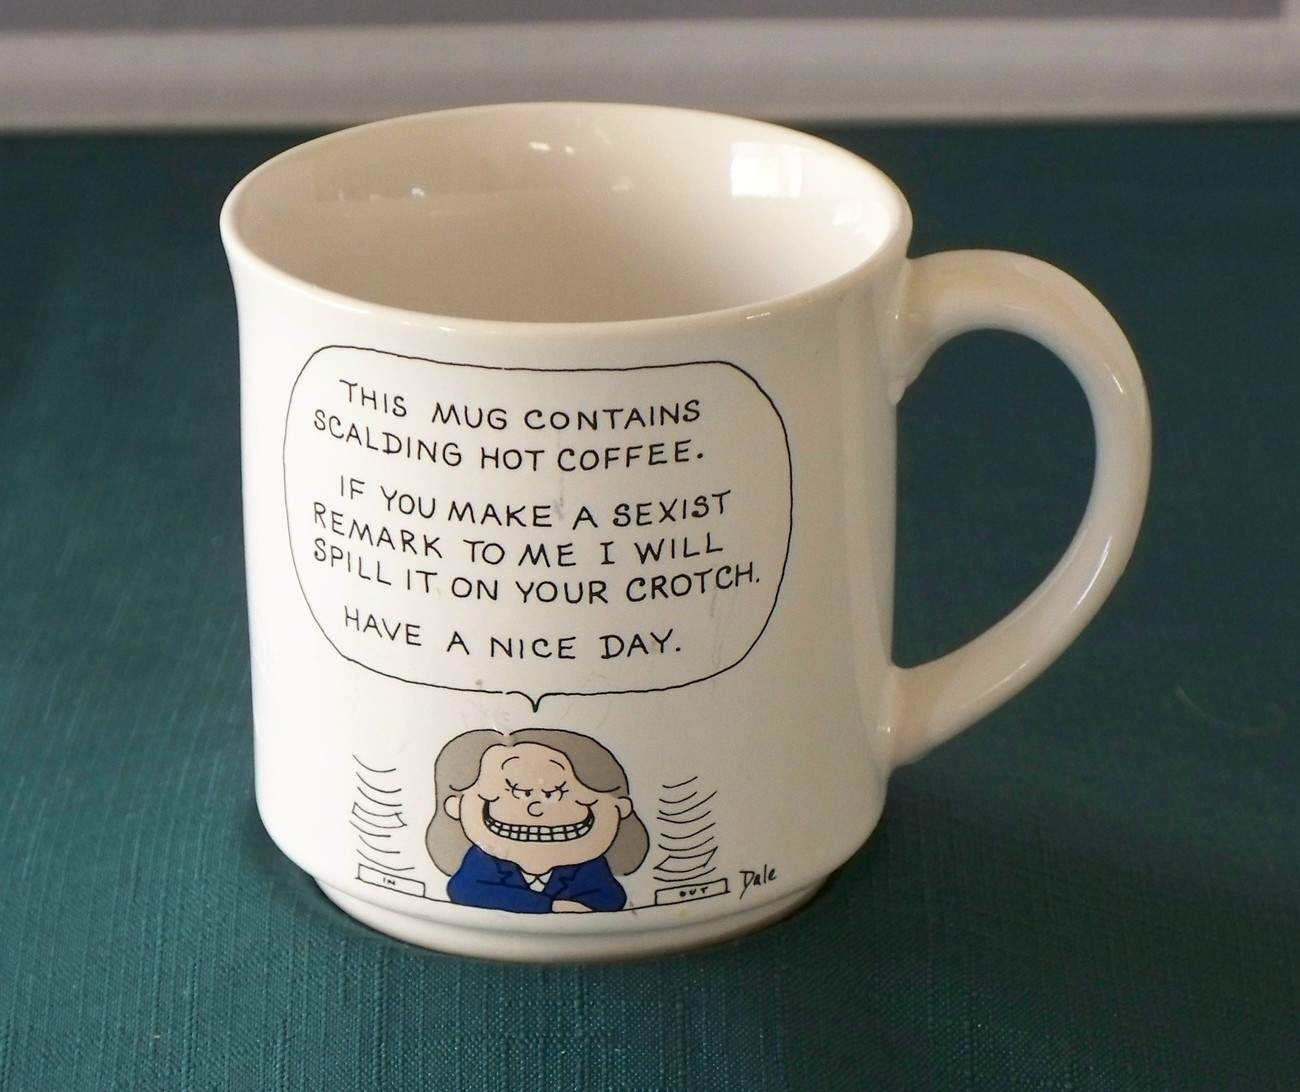 """If You Make A Sexist Remark.."" Coffee Mug By Dale Good Cond"